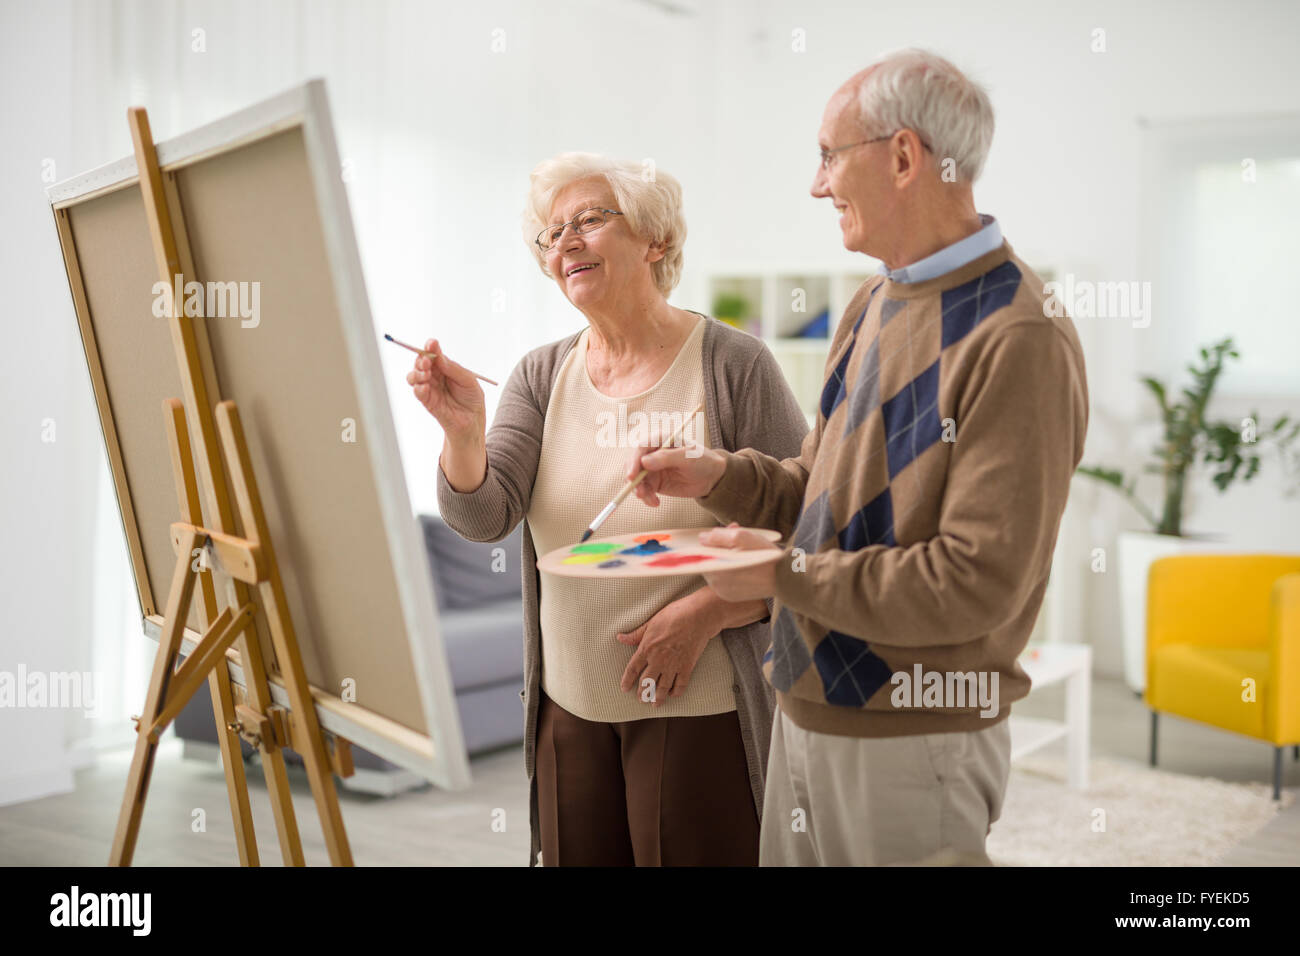 Elderly Couple Having Fun Together And Painting On A Canvas At Home